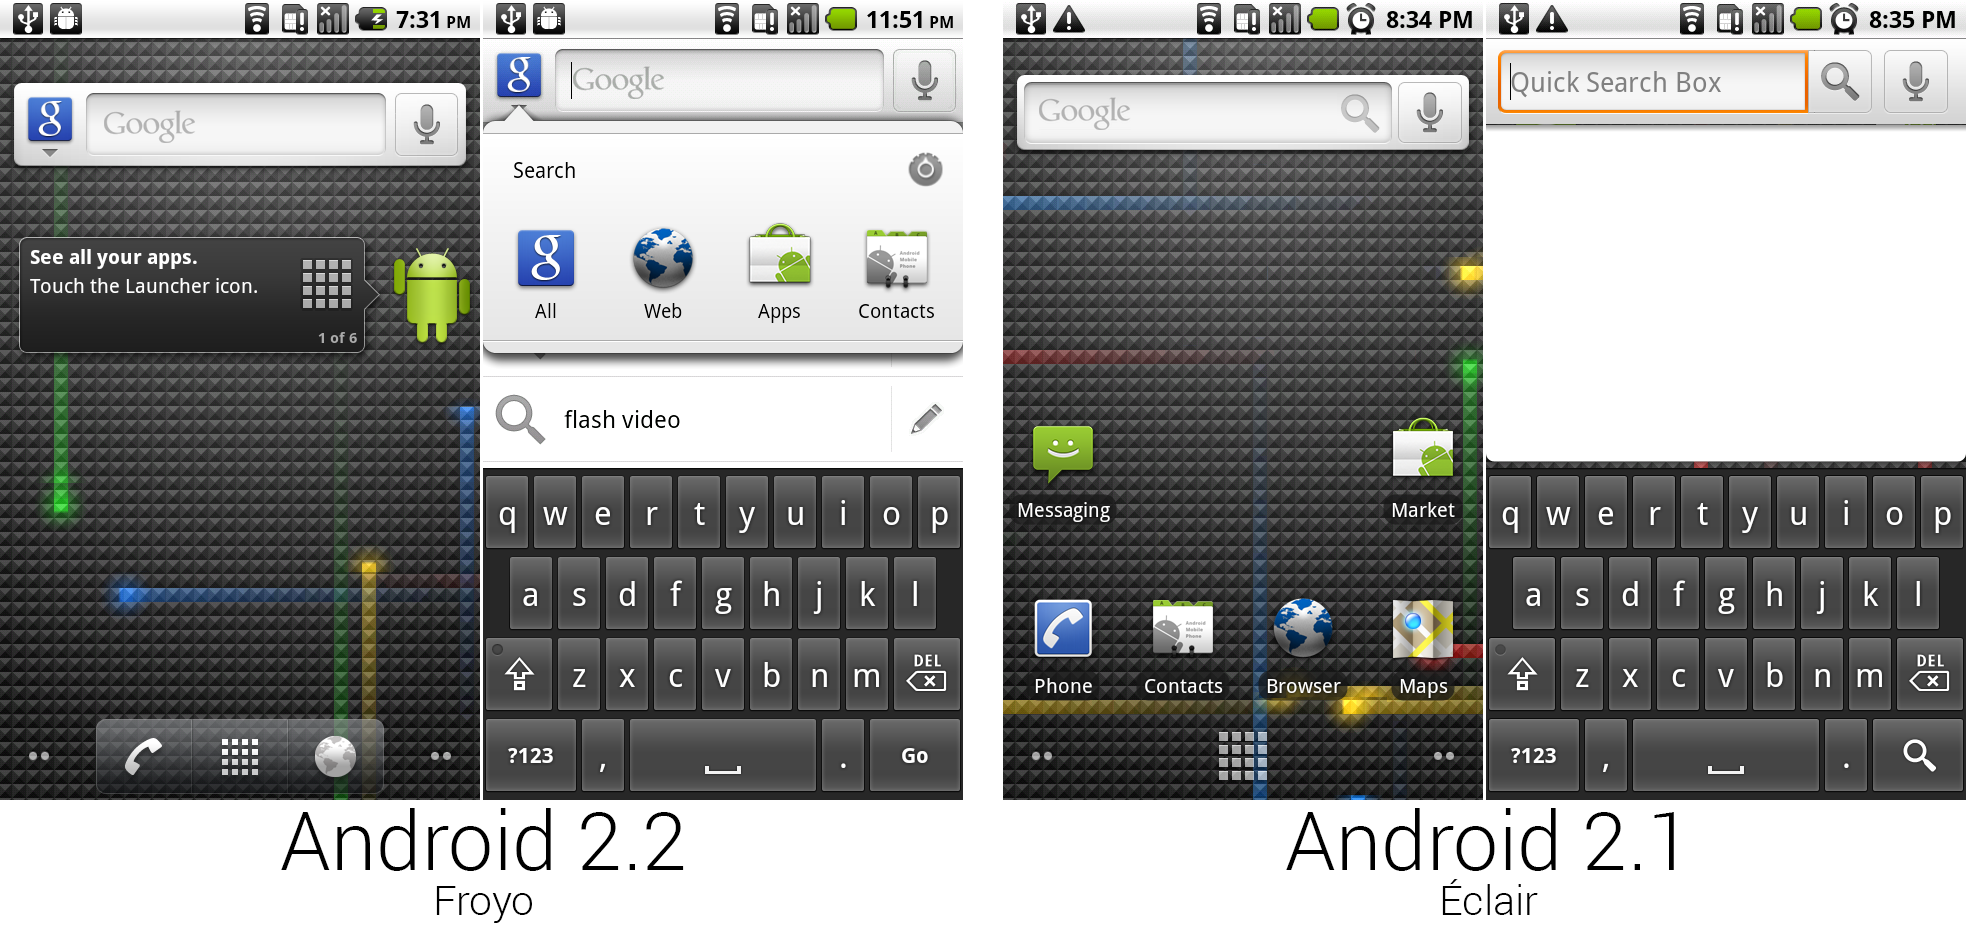 Froyo added a two-icon dock at the bottom and universal search.